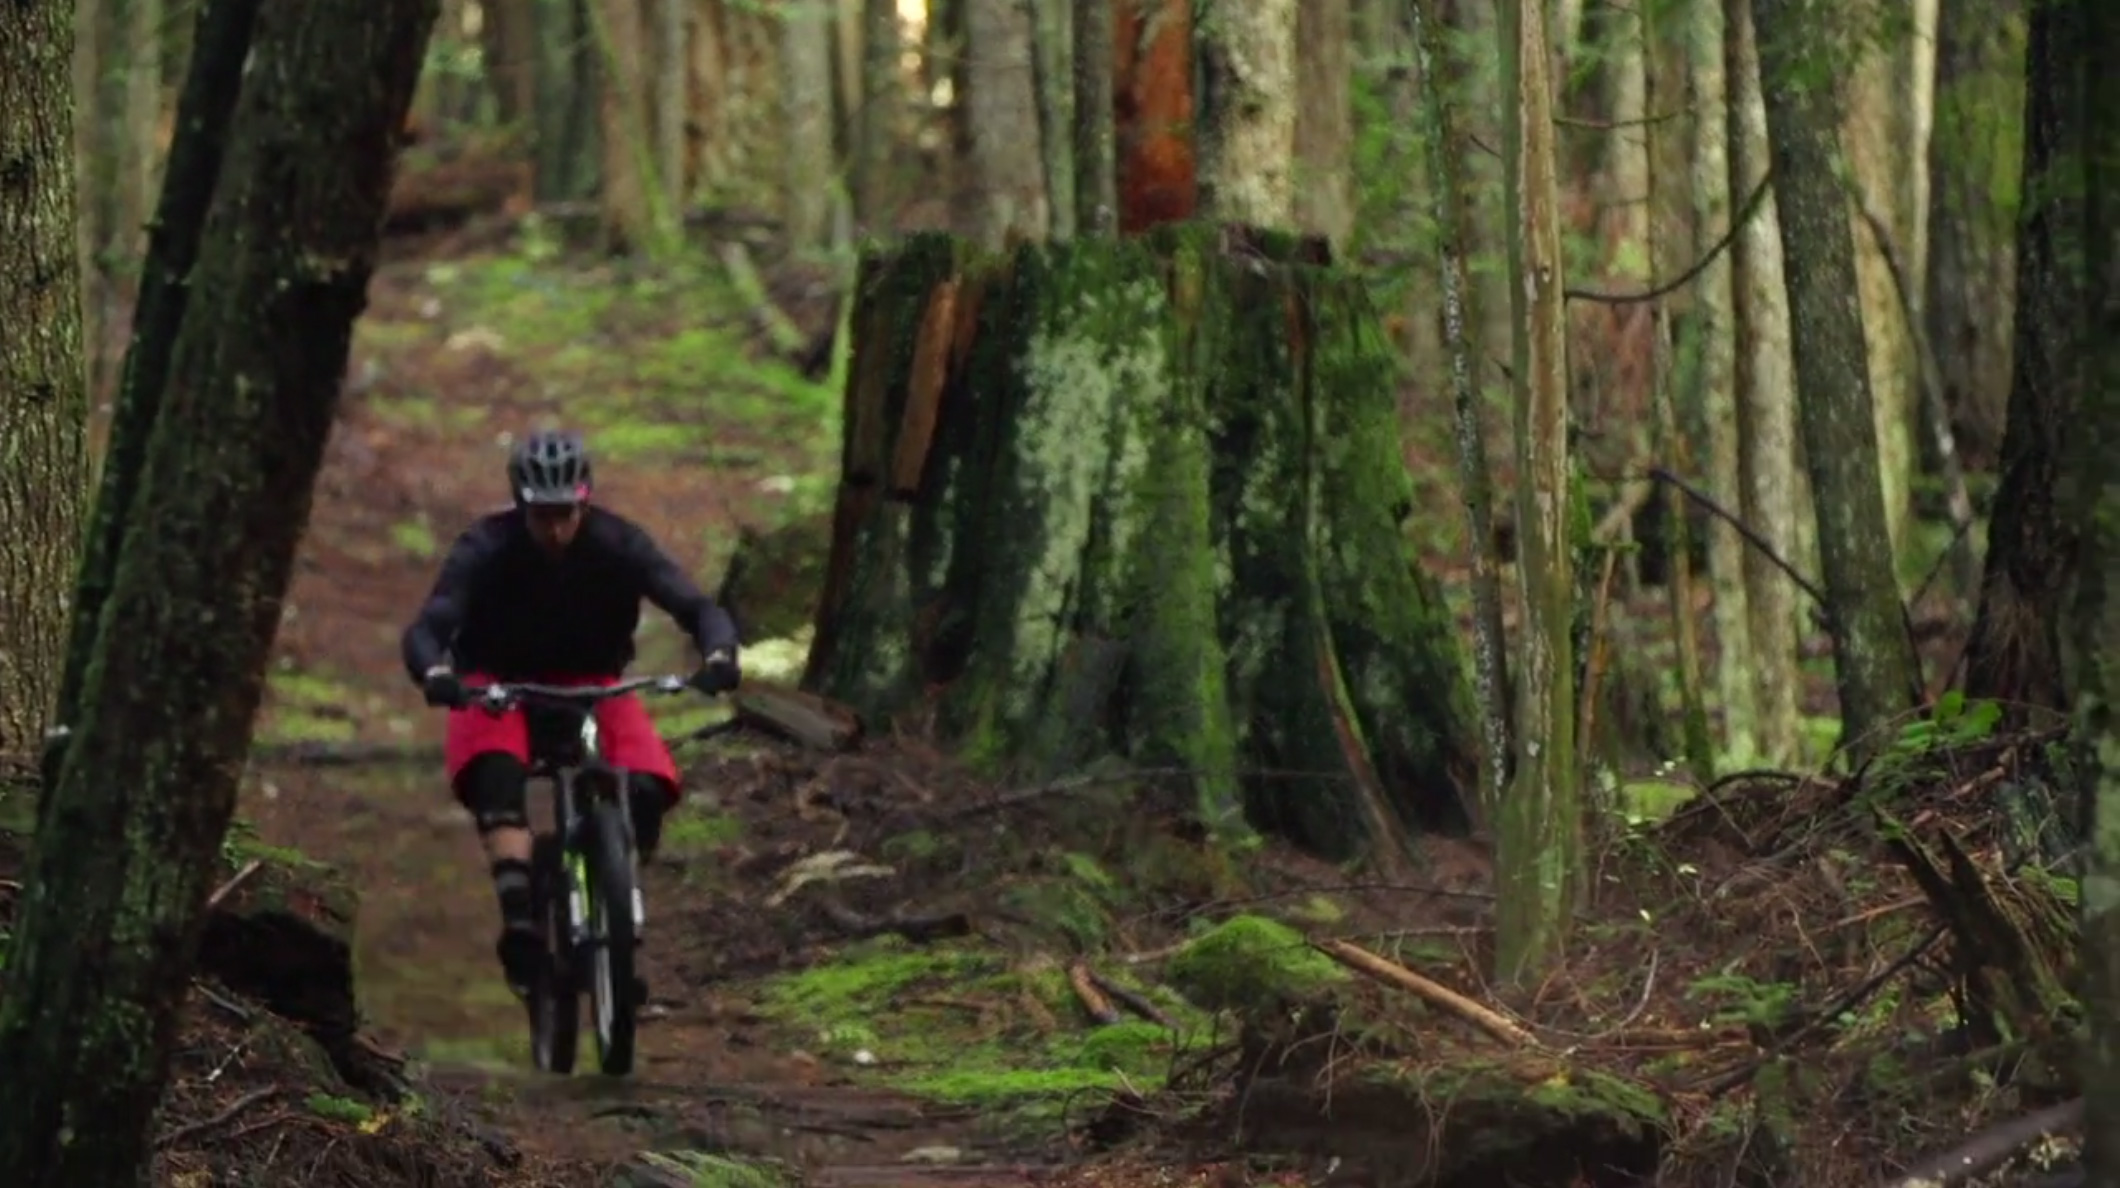 Man biking in woods